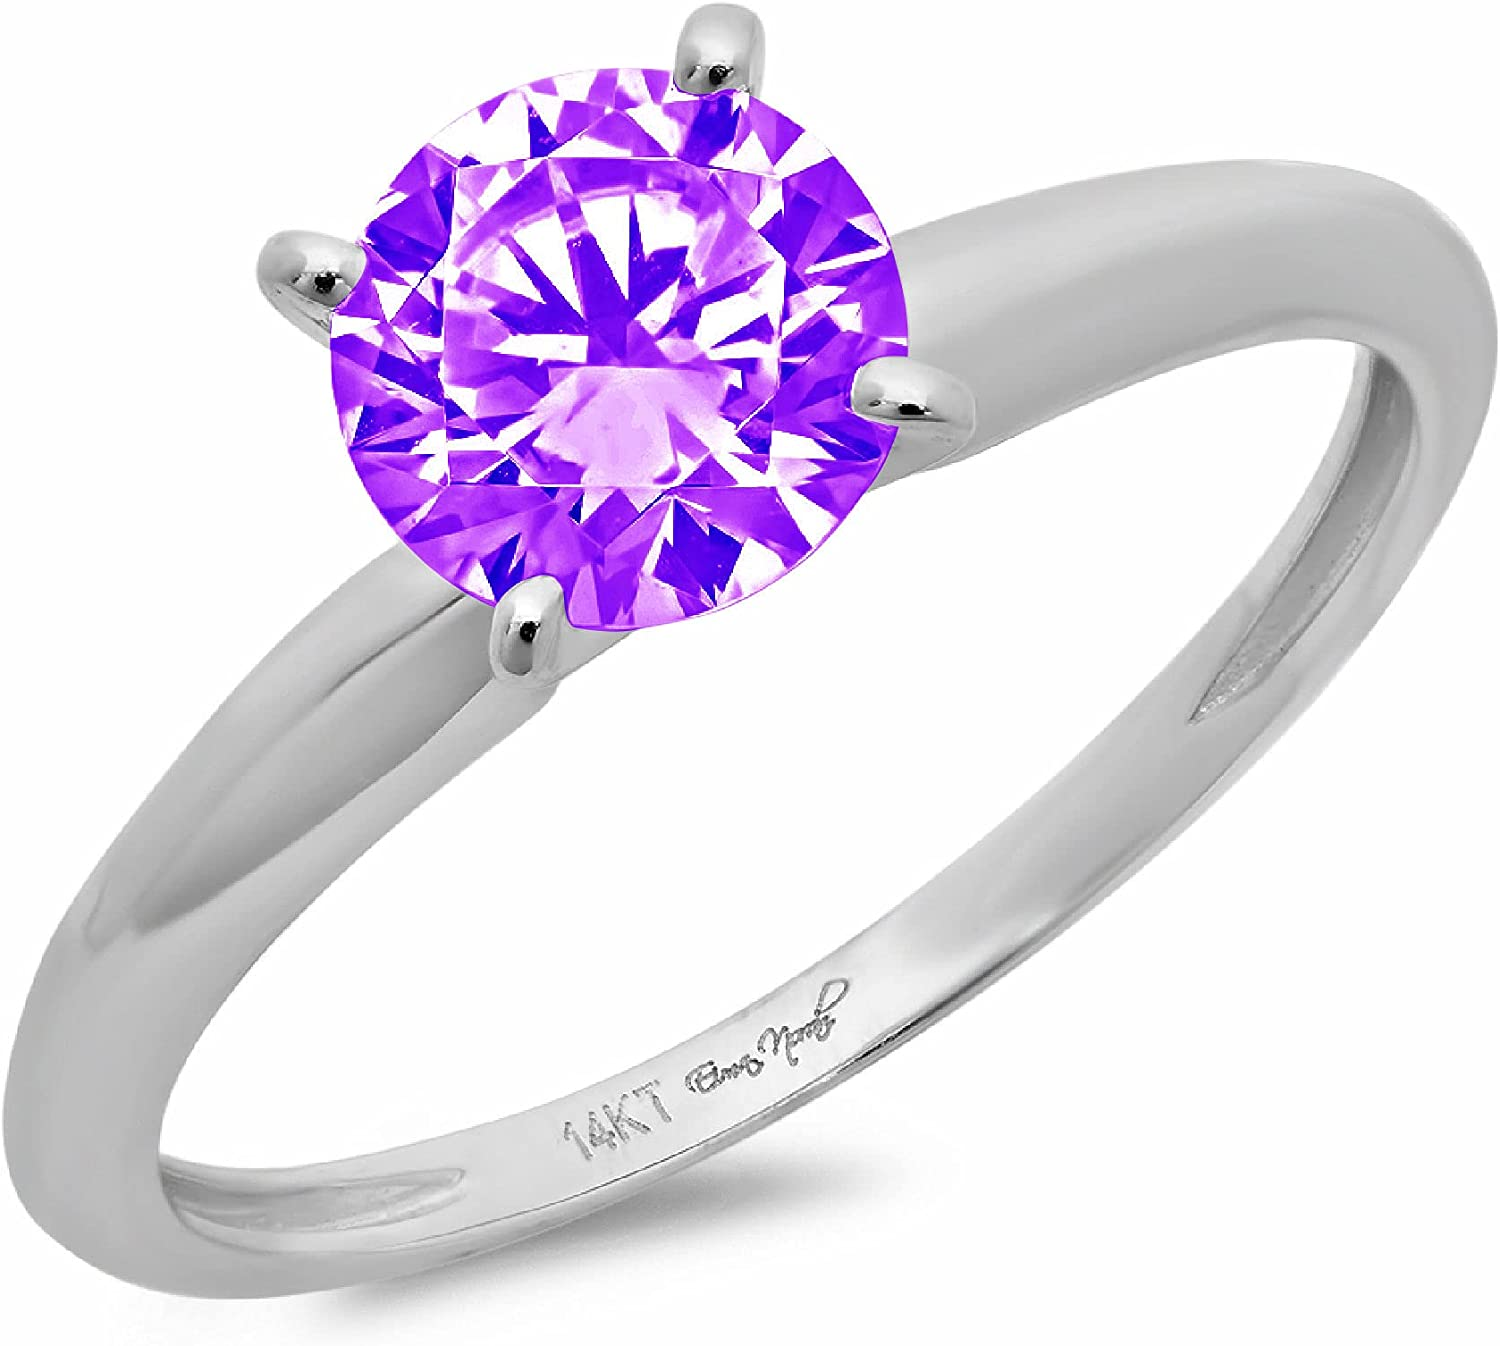 2.4ct Round Cut Solitaire Natural Purple Amethyst Excellent VVS1 4-Prong Engagement Wedding Bridal Promise Anniversary Ring Solid 14k White Gold for Women